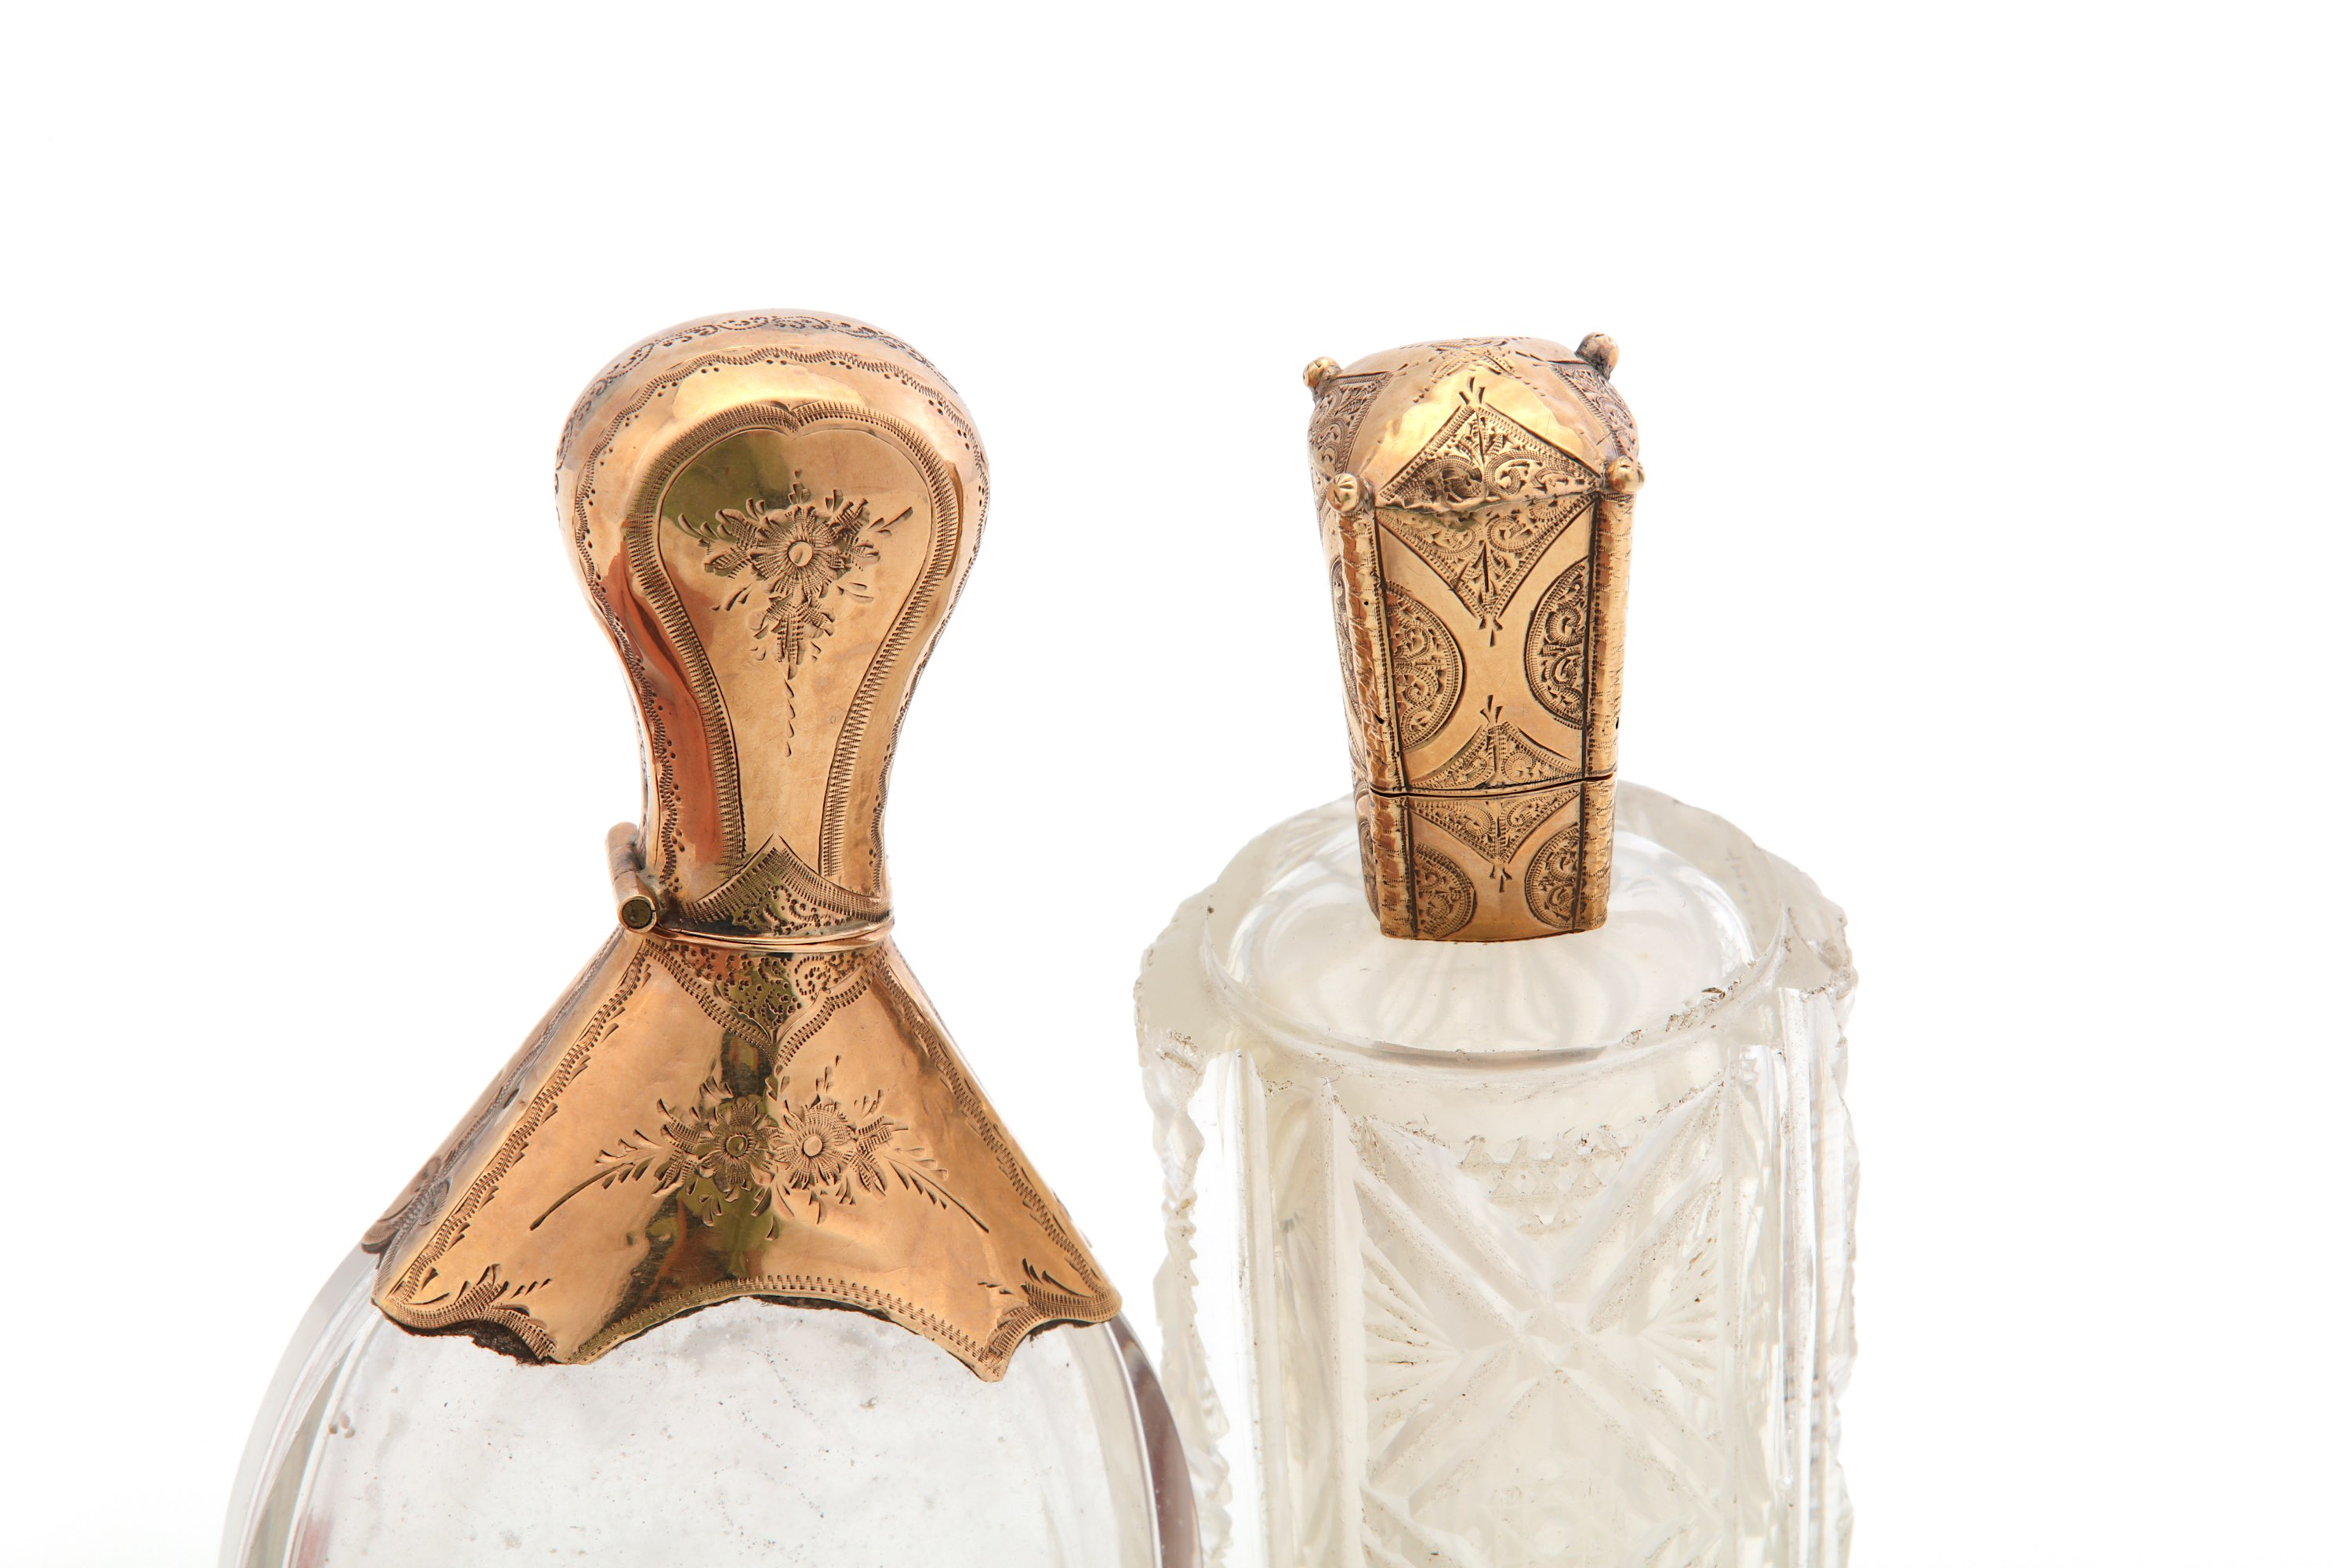 Lot 38 - Two 19th century Dutch 14 carat gold-mounted glass scent bottles, 1853-1906